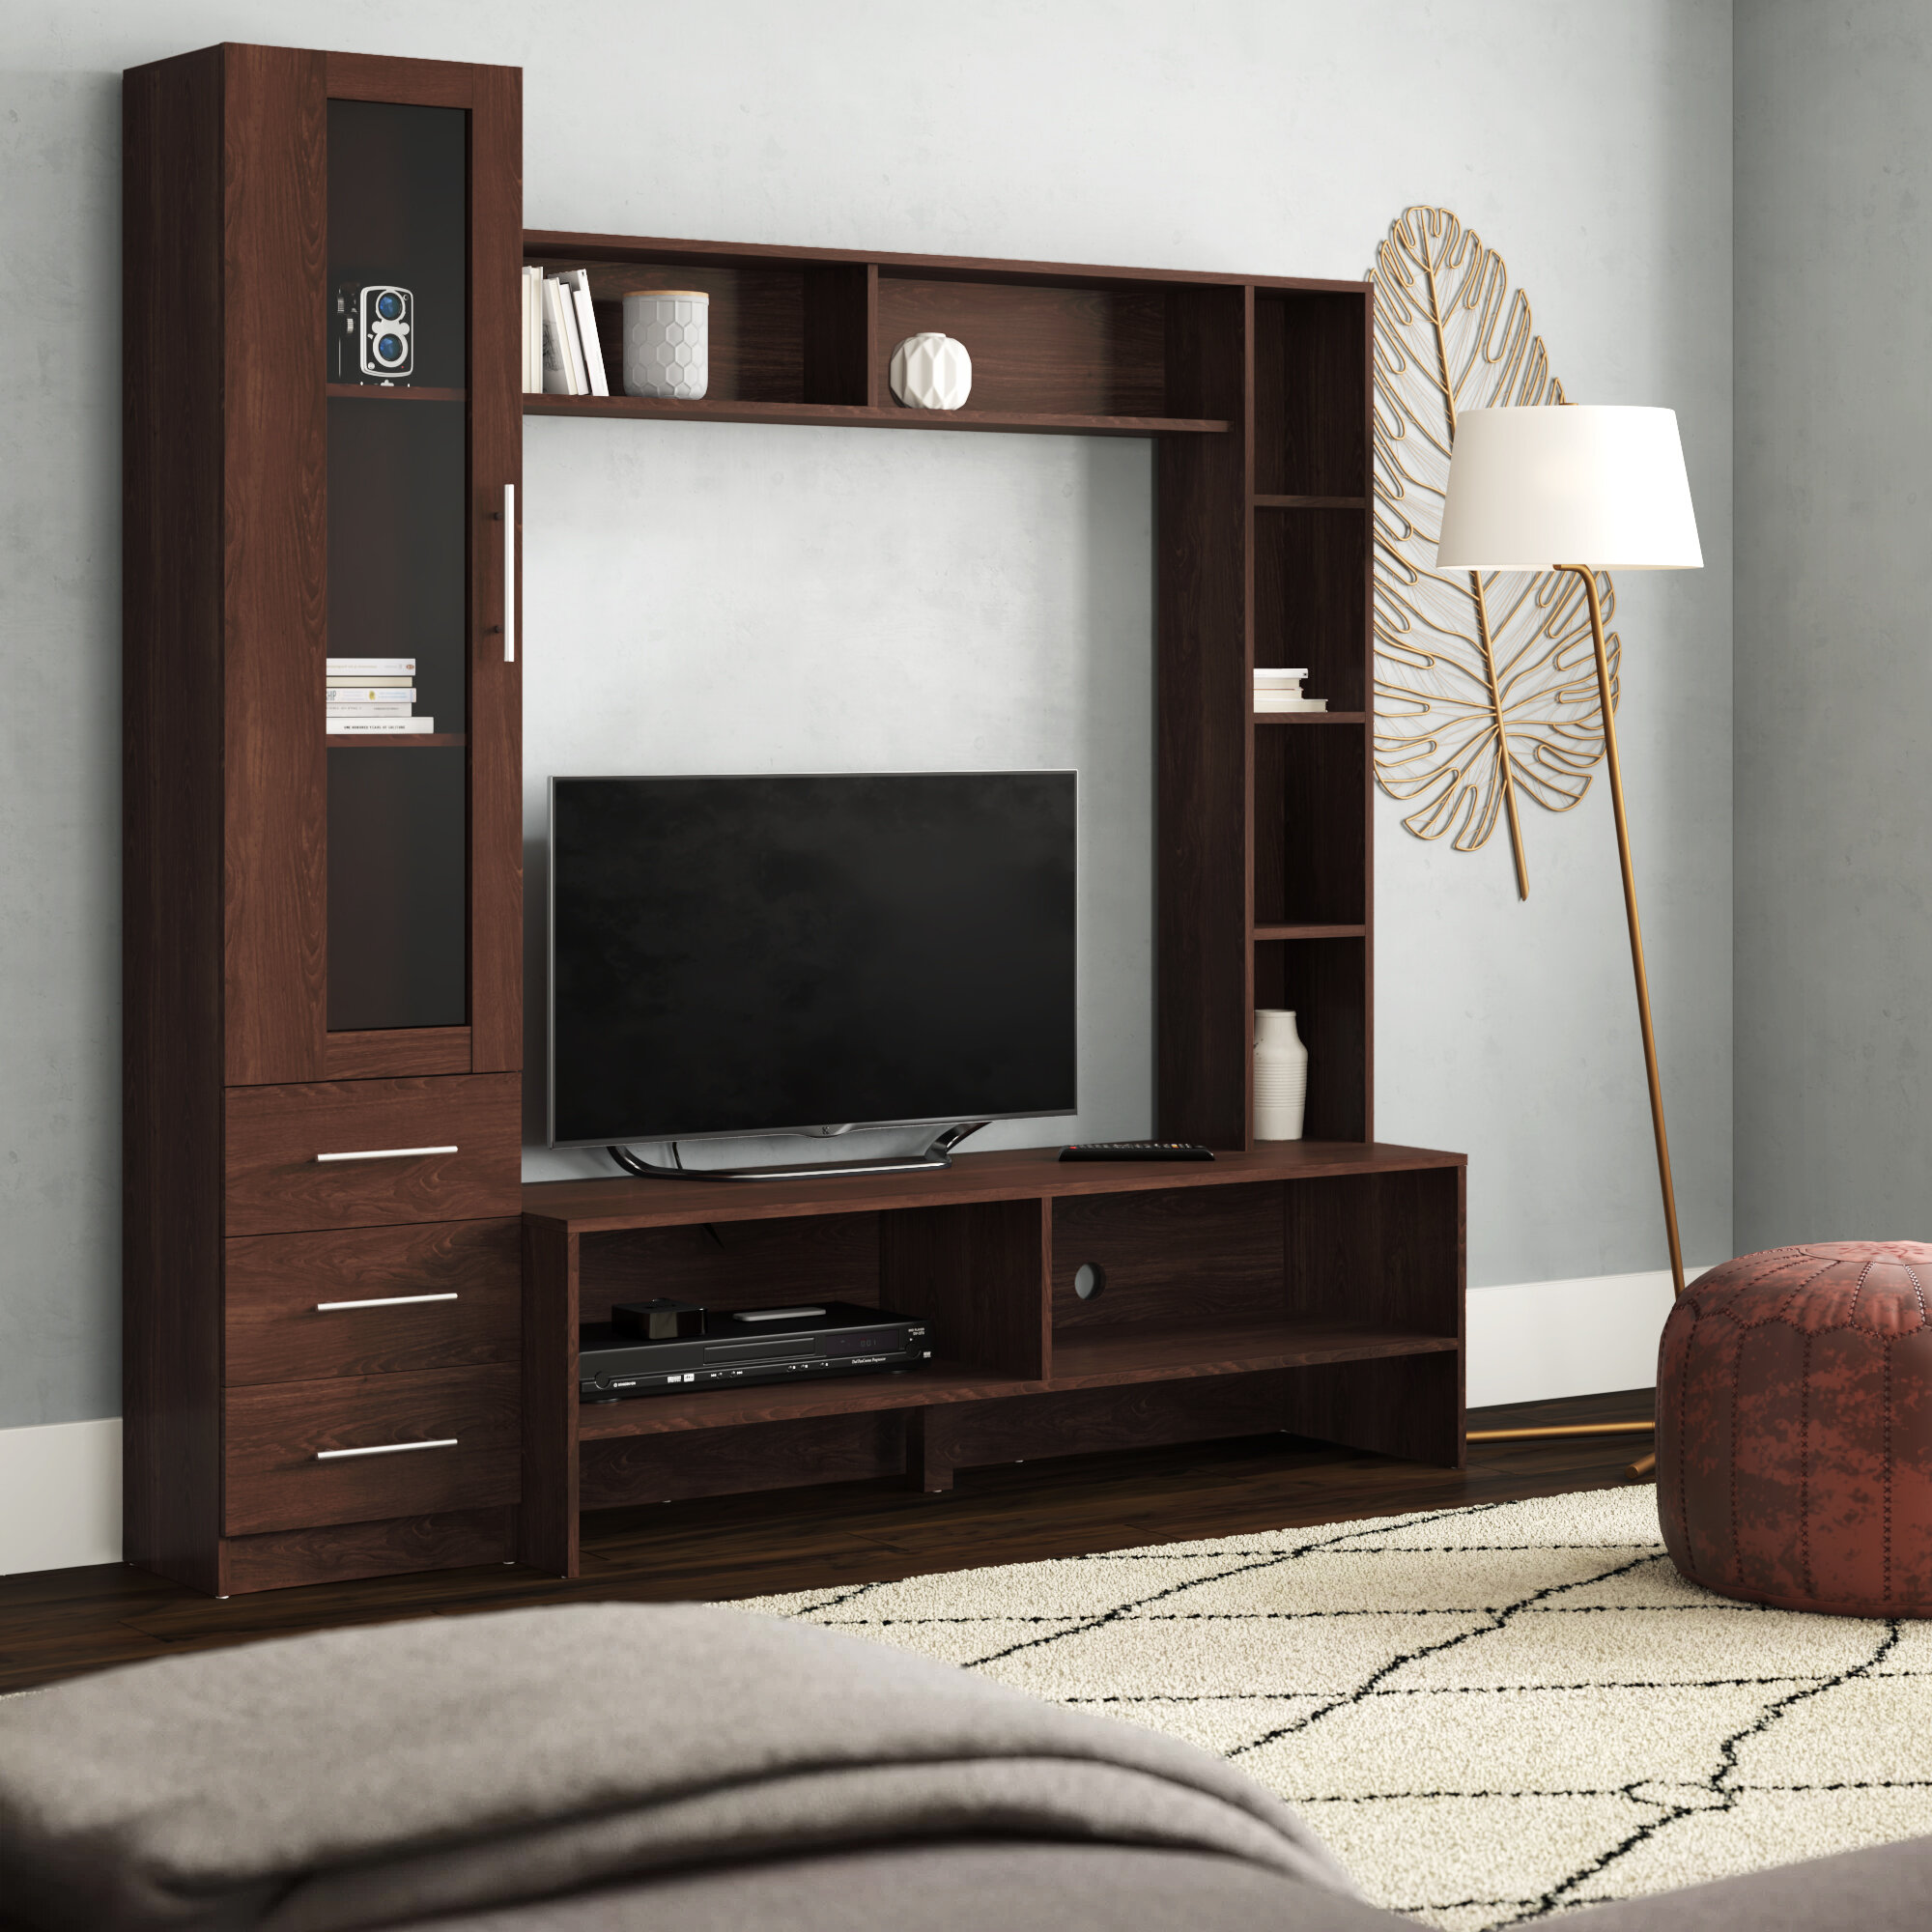 Ebern designs uppingham entertainment center for tvs up to 50 reviews wayfair